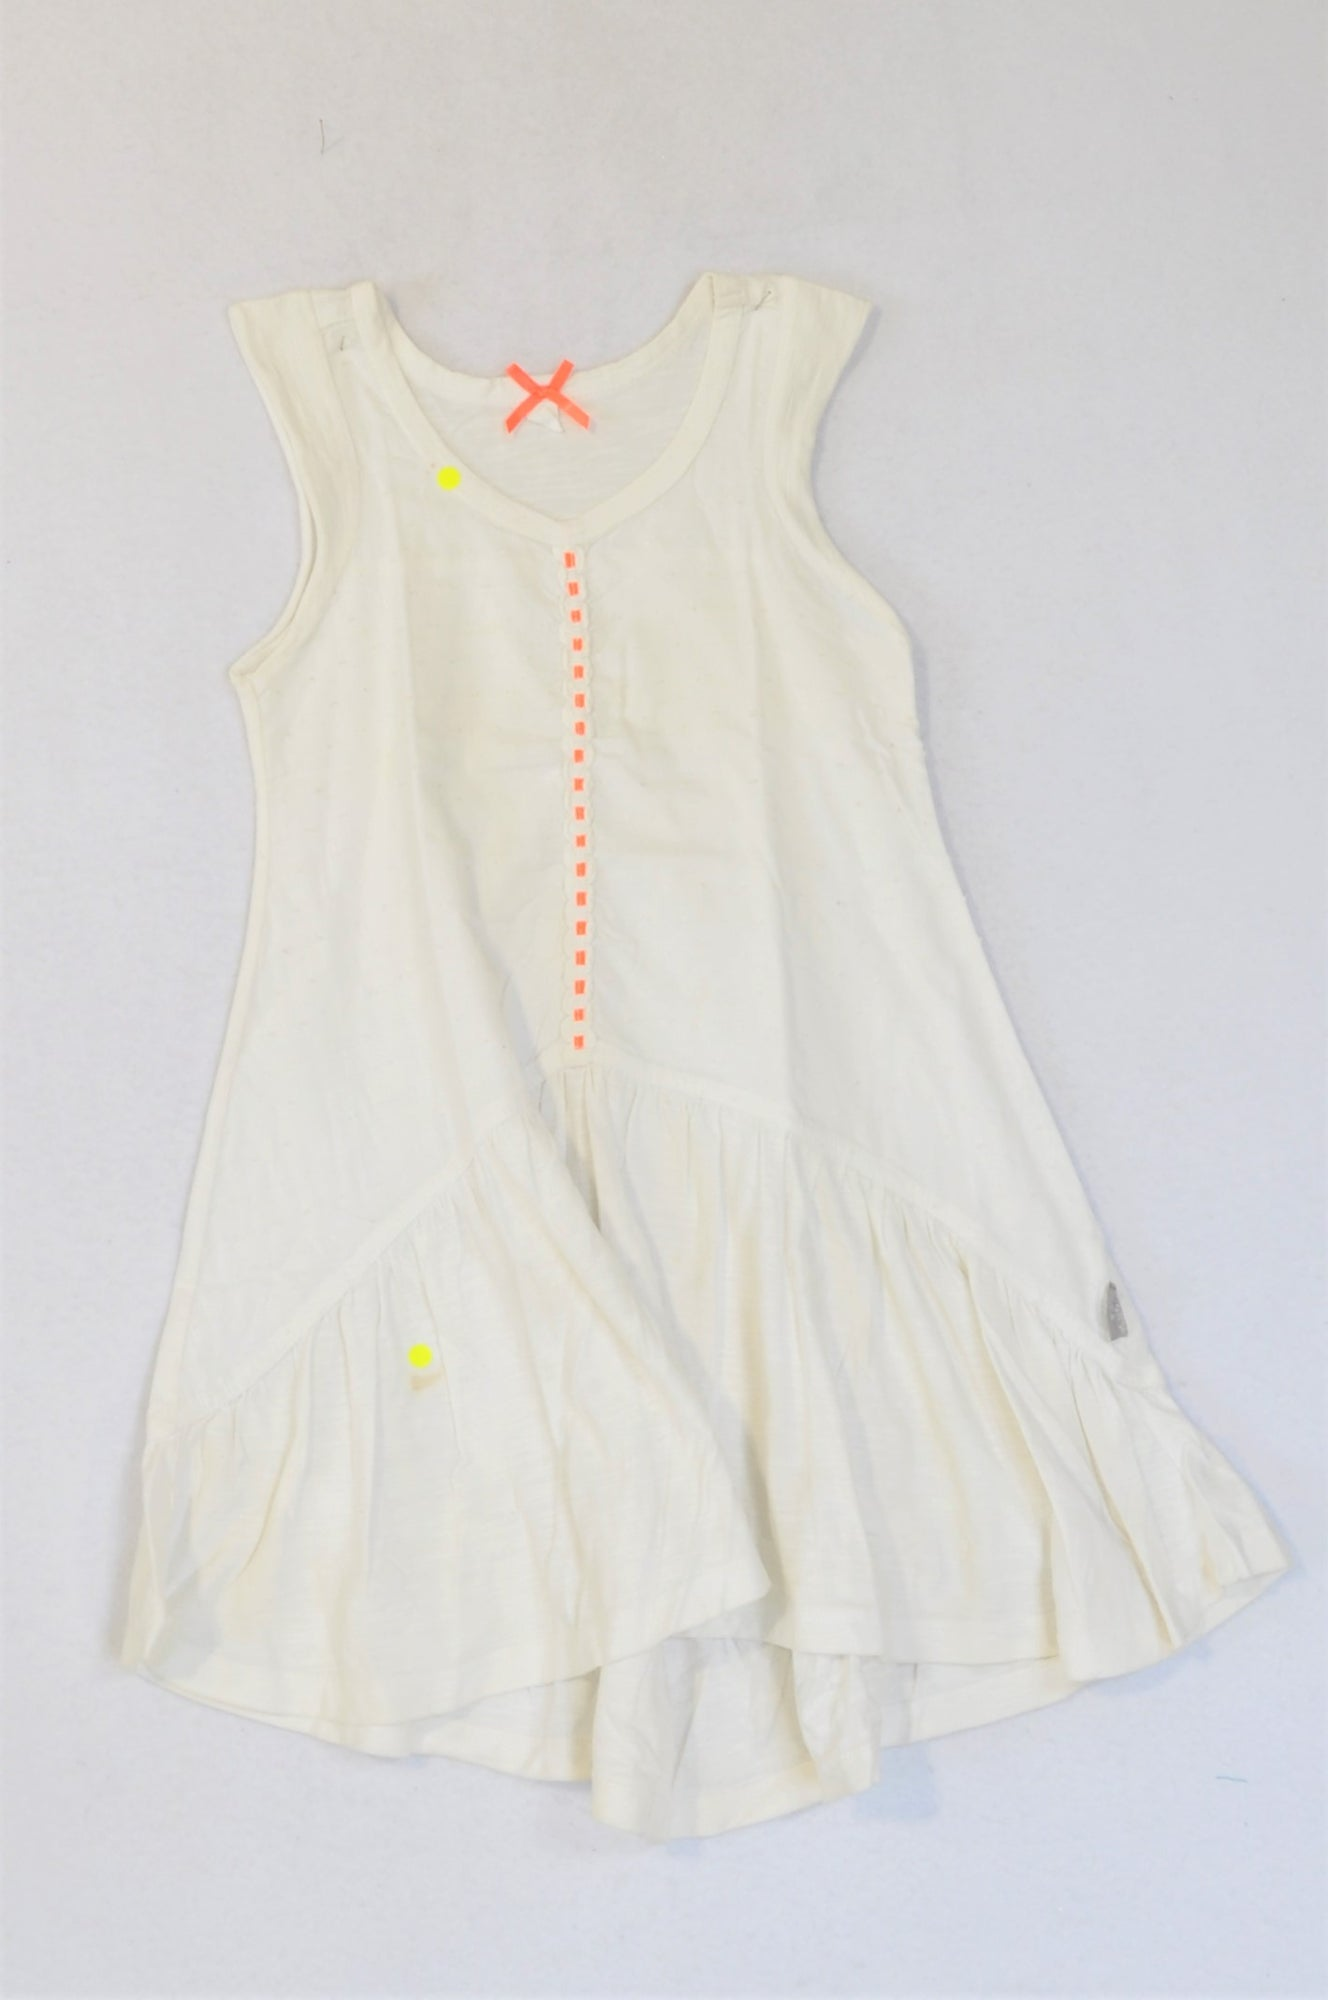 Unbranded White With Neon Detail Dress Girls 4-5 years